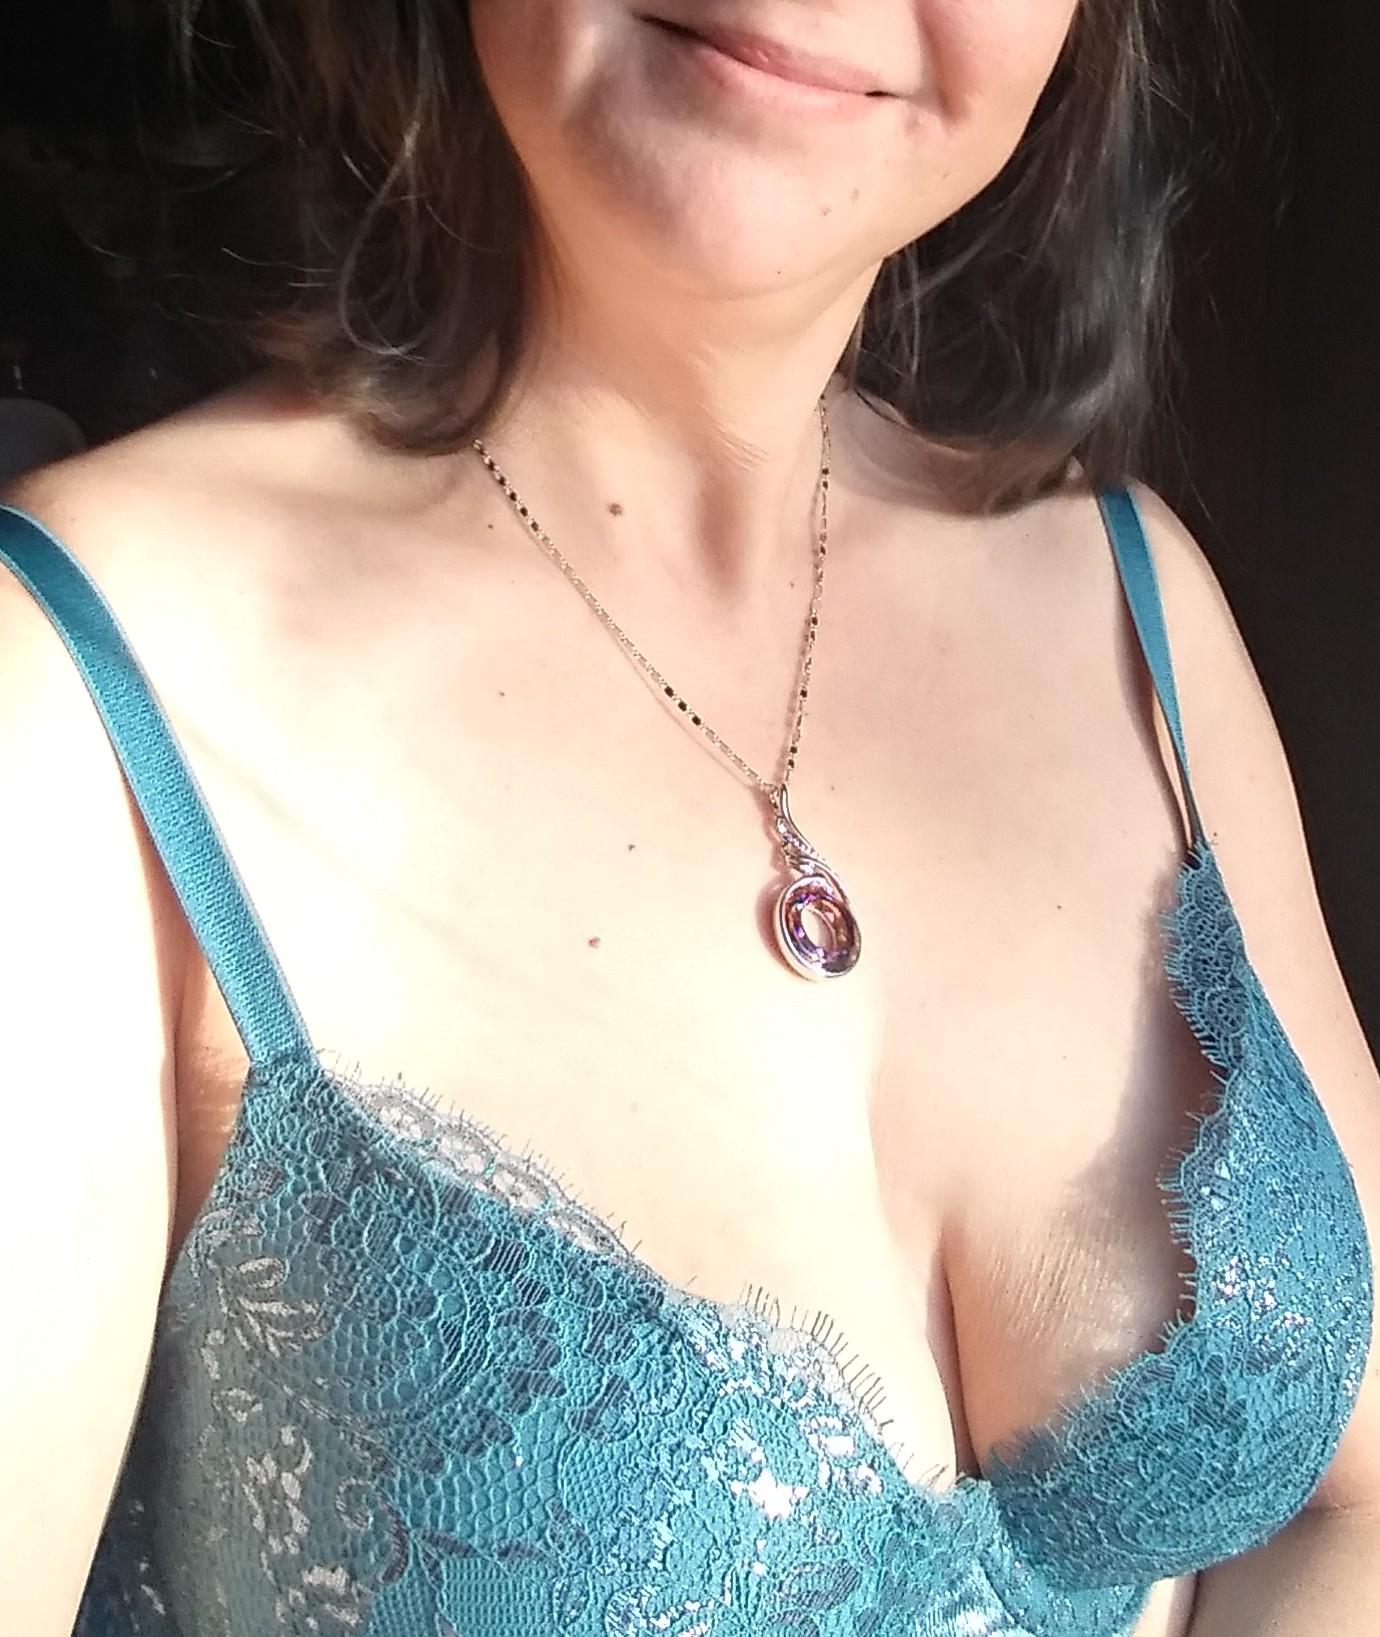 I wanted to show off my new pushup bra (f)or you. 38 year old mom NSFW